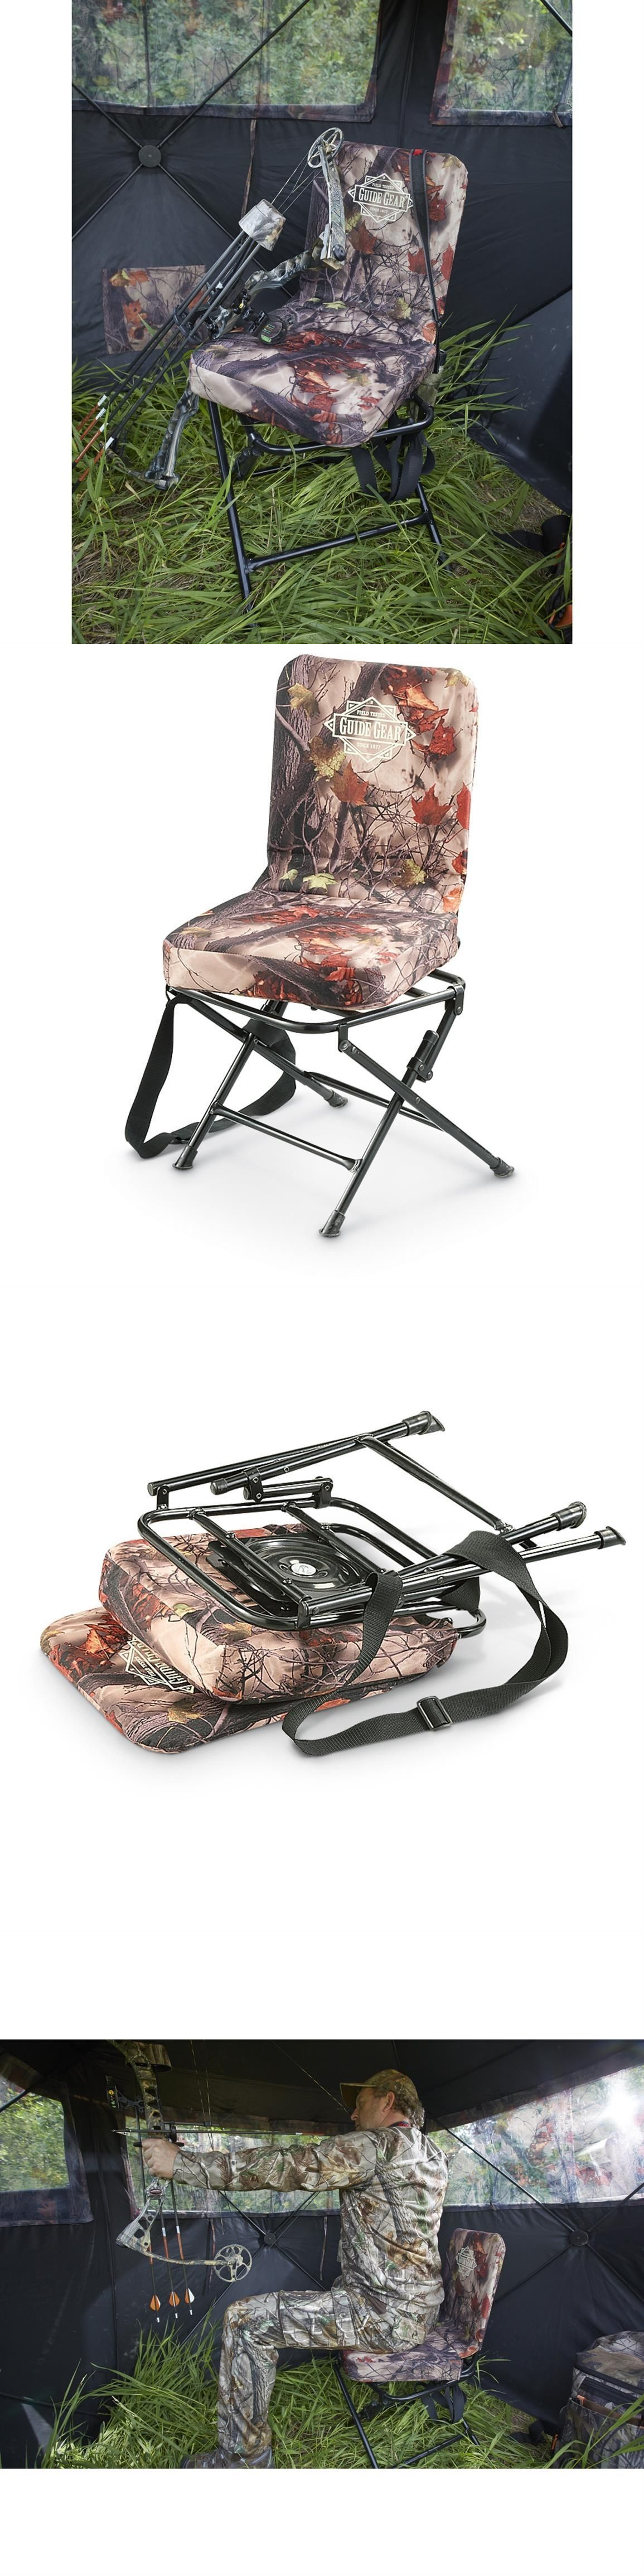 Seats and Chairs Hunting Gear 360 Swivel Hunters Camo